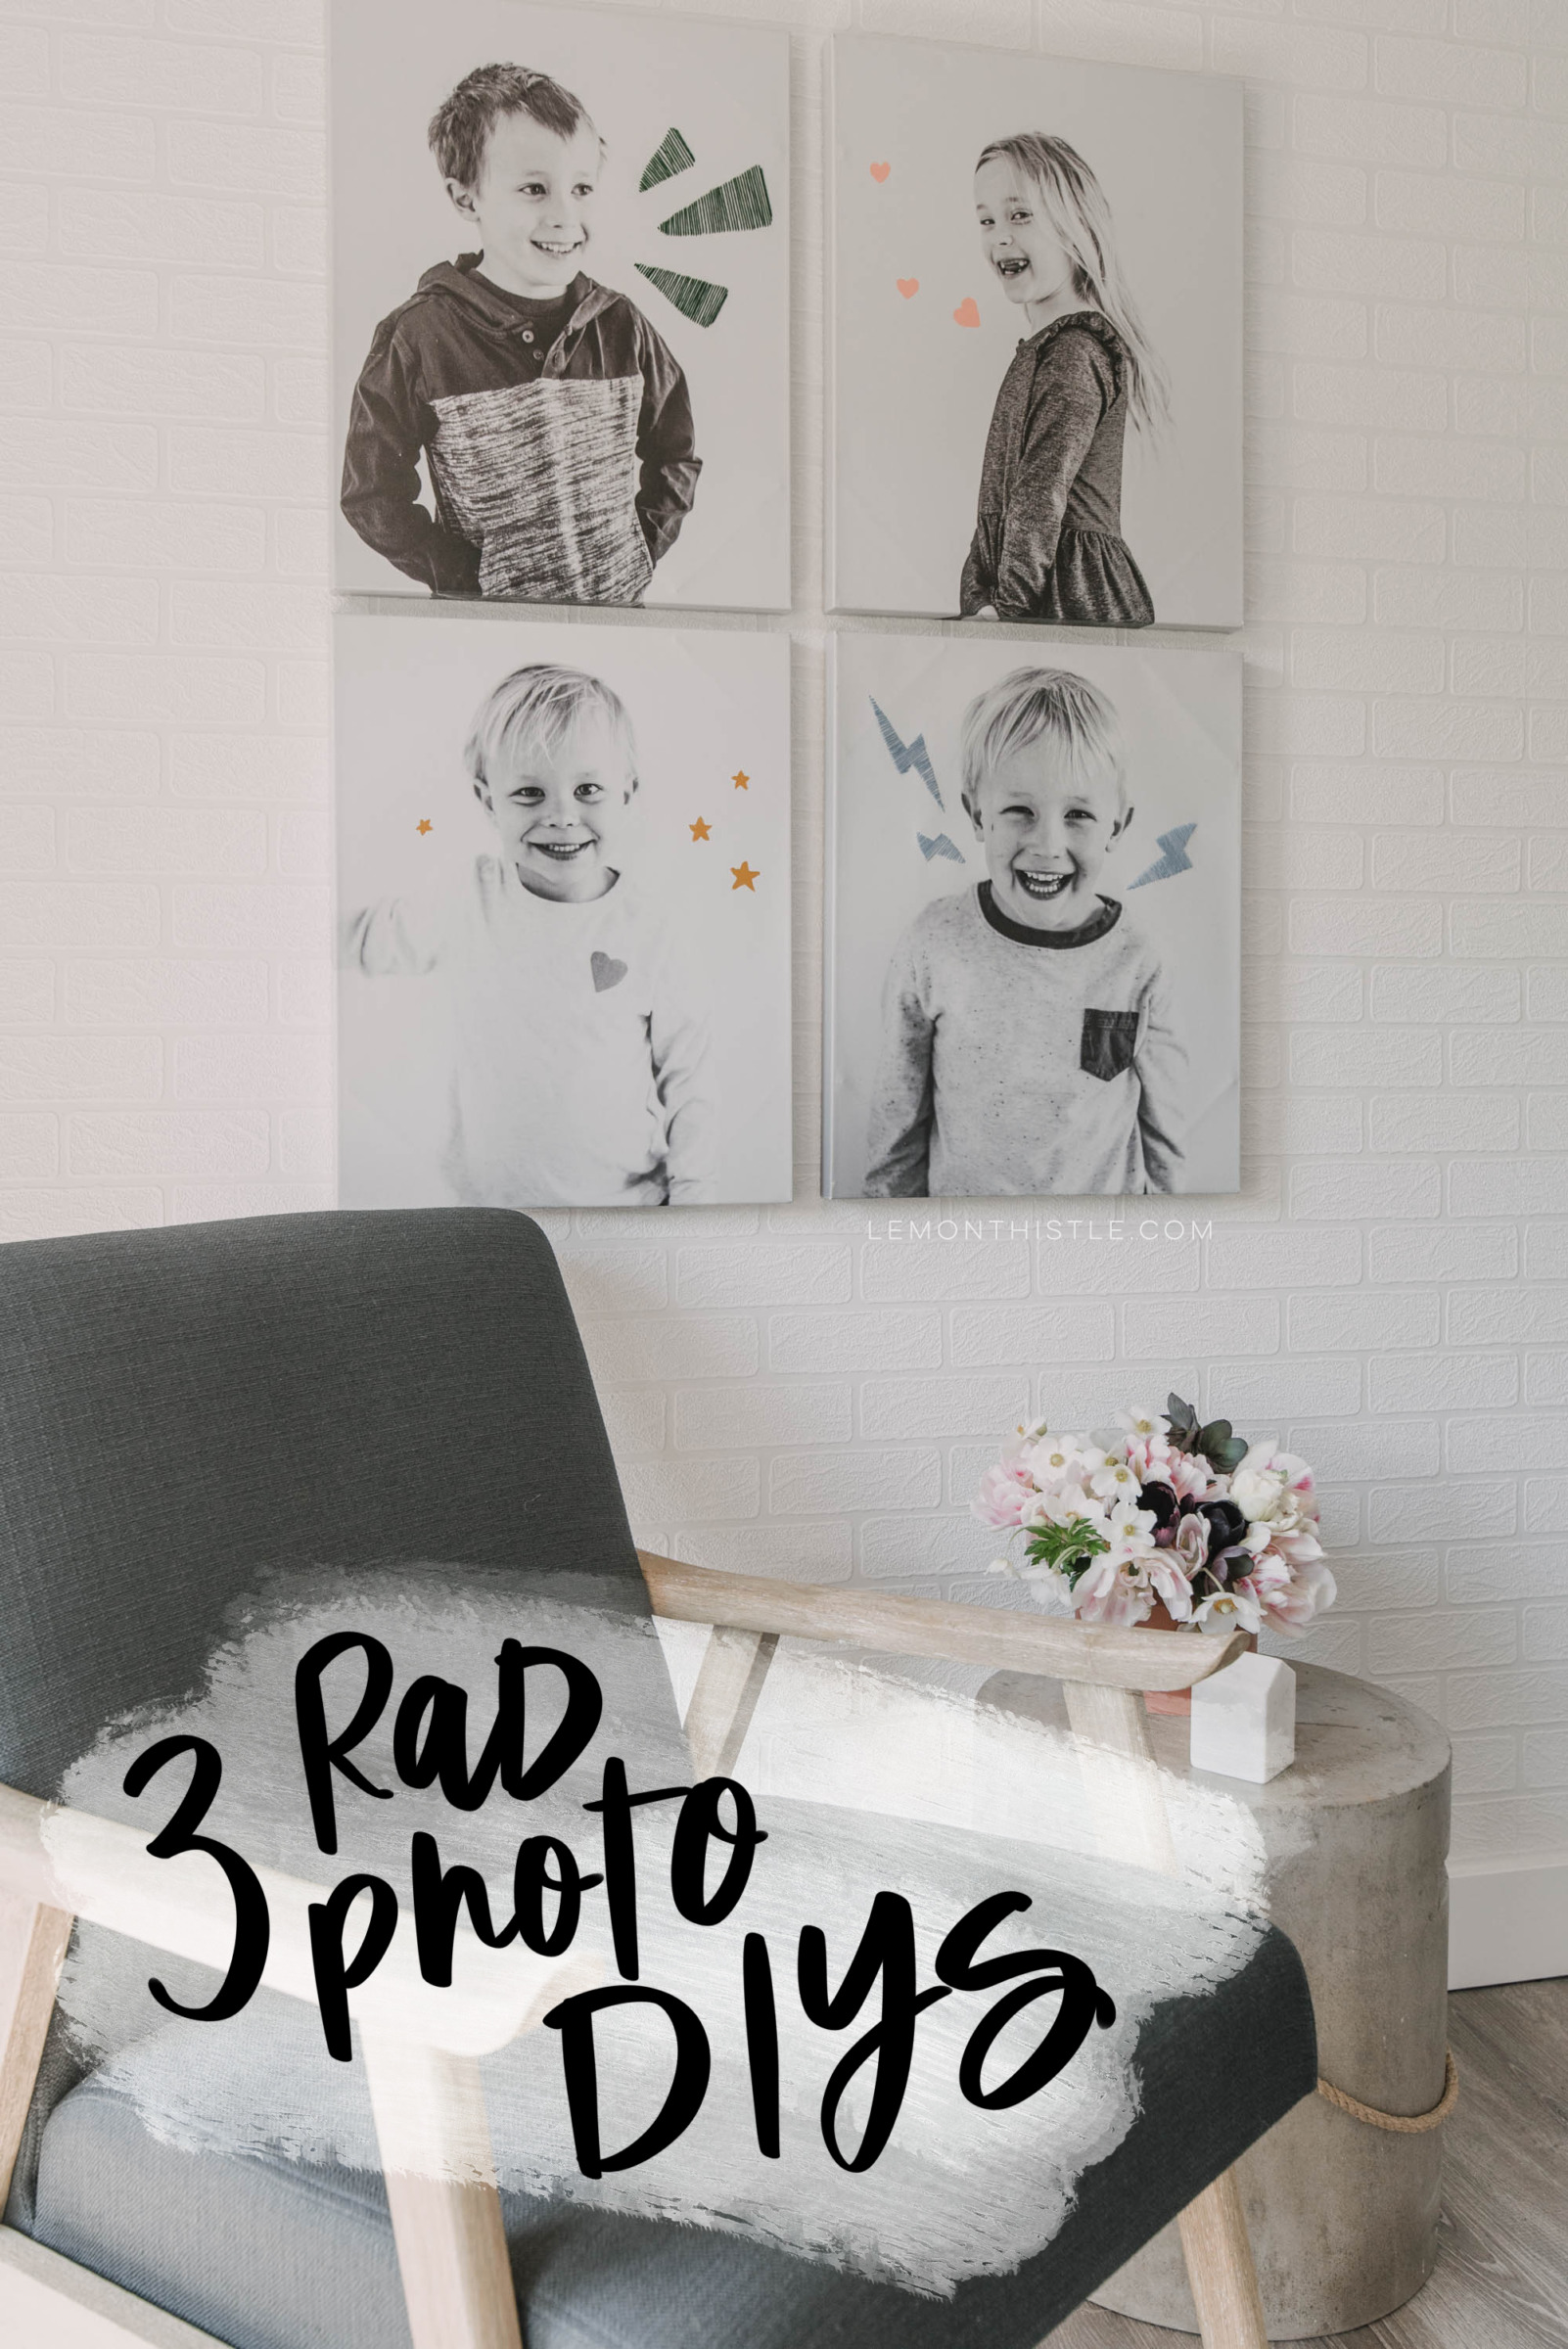 fun ideas to get photos on your walls!